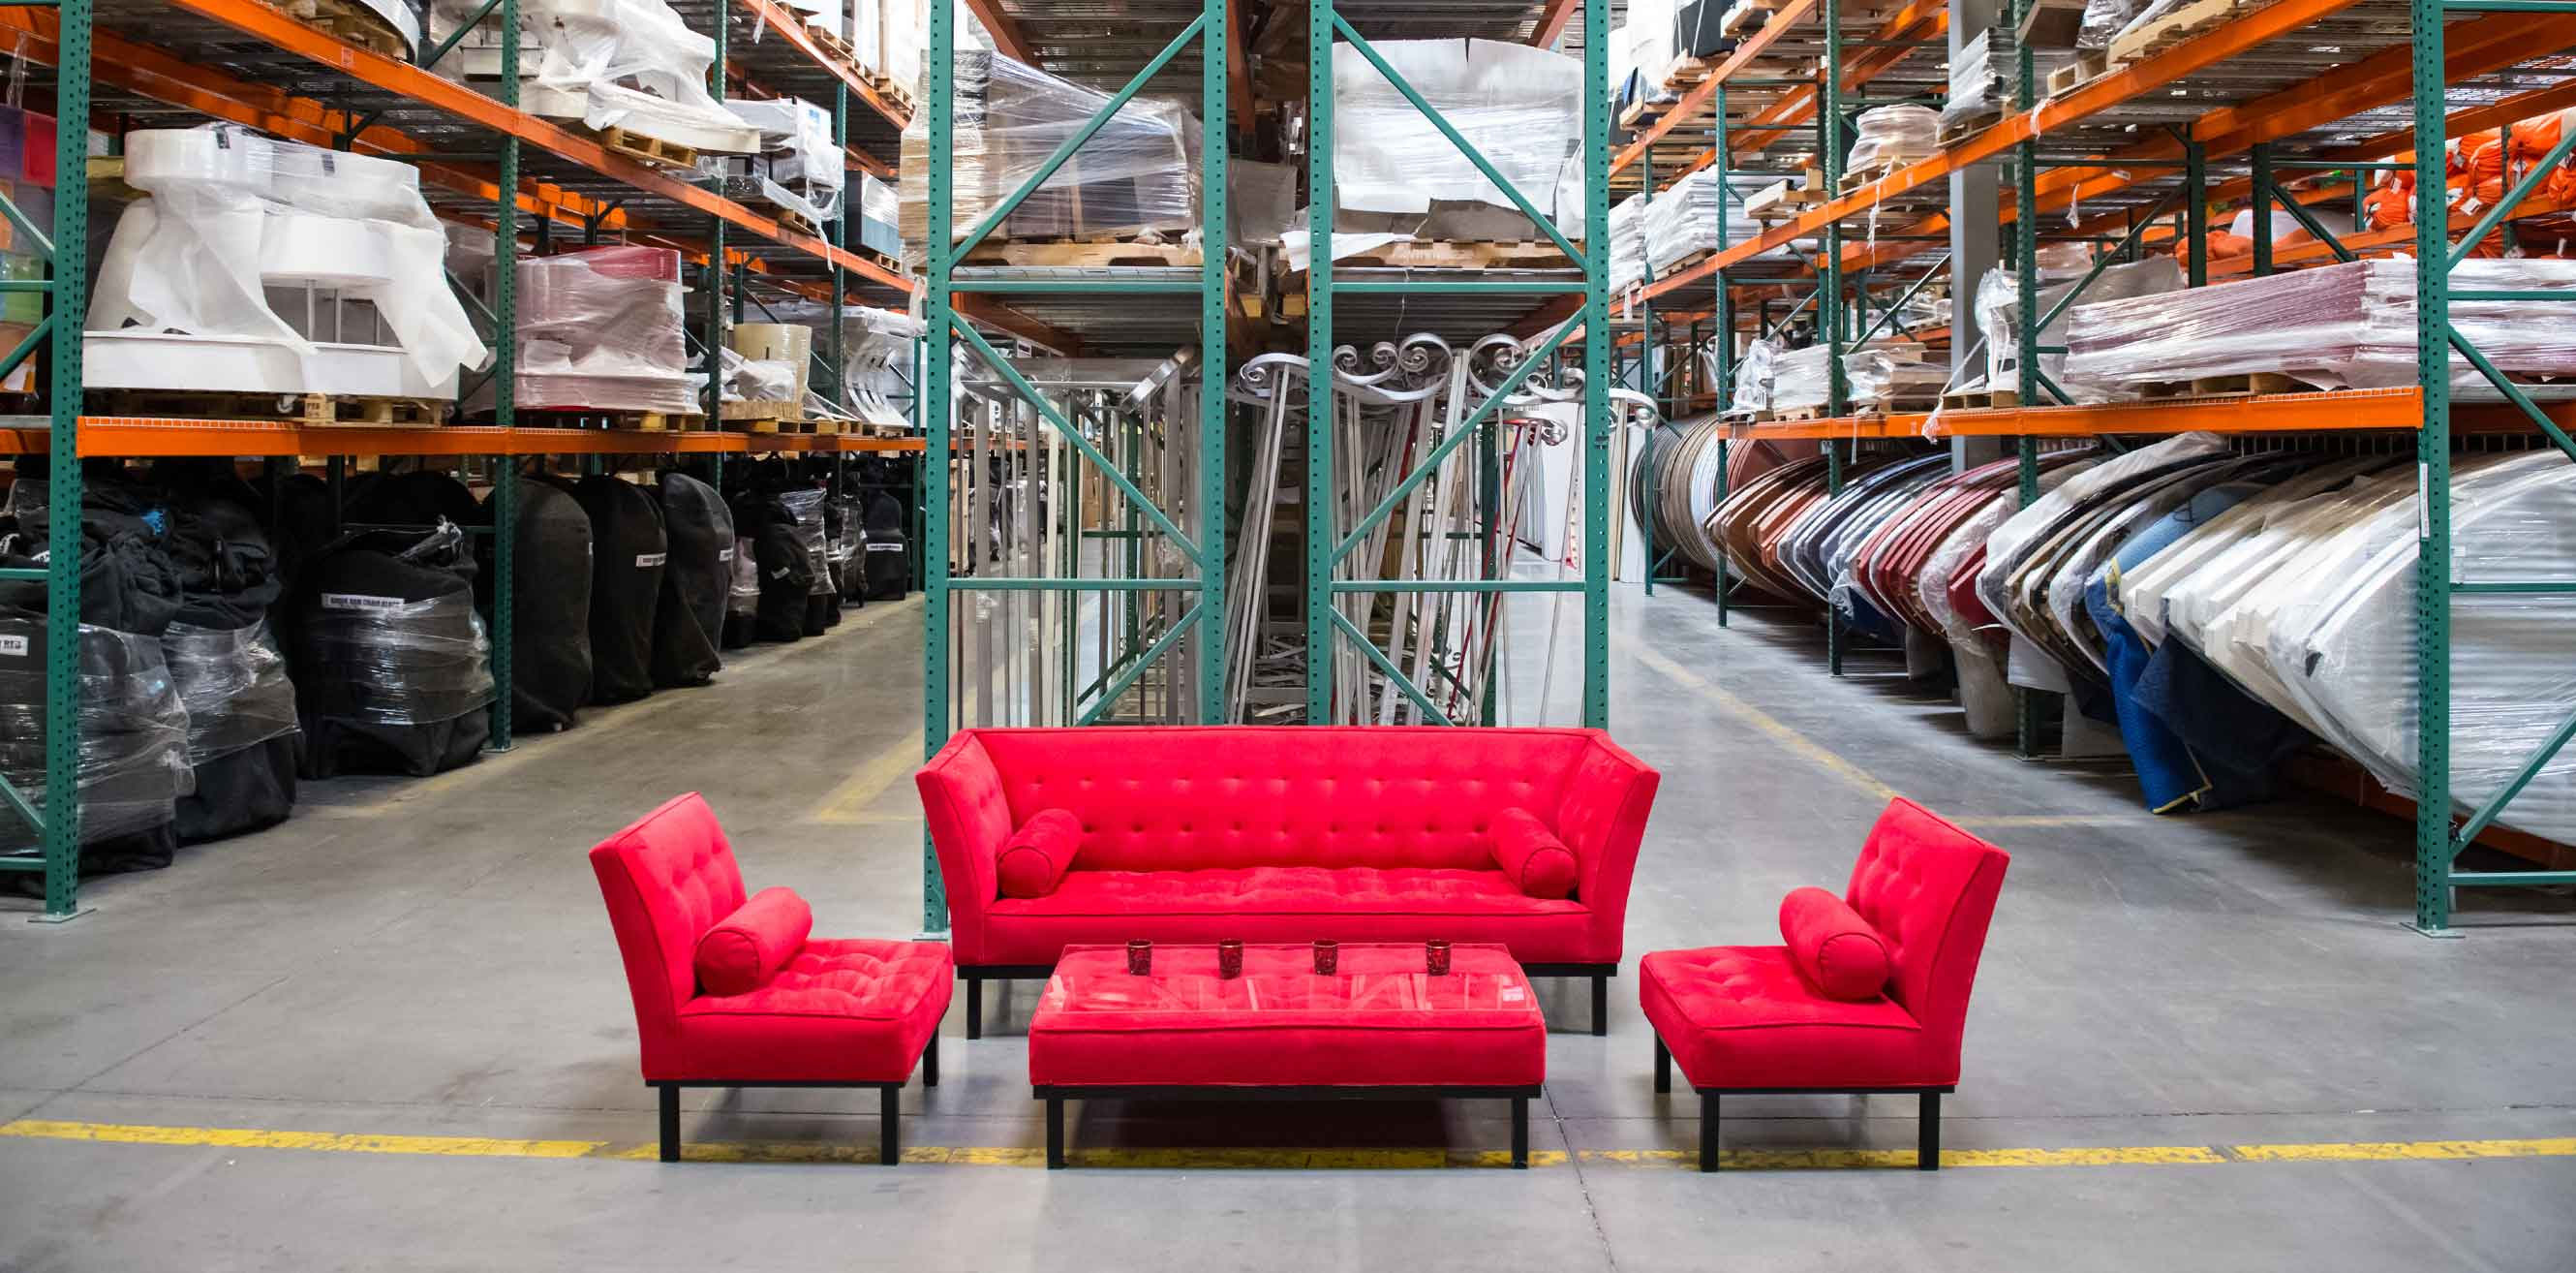 A red couch and chairs in a warehouse